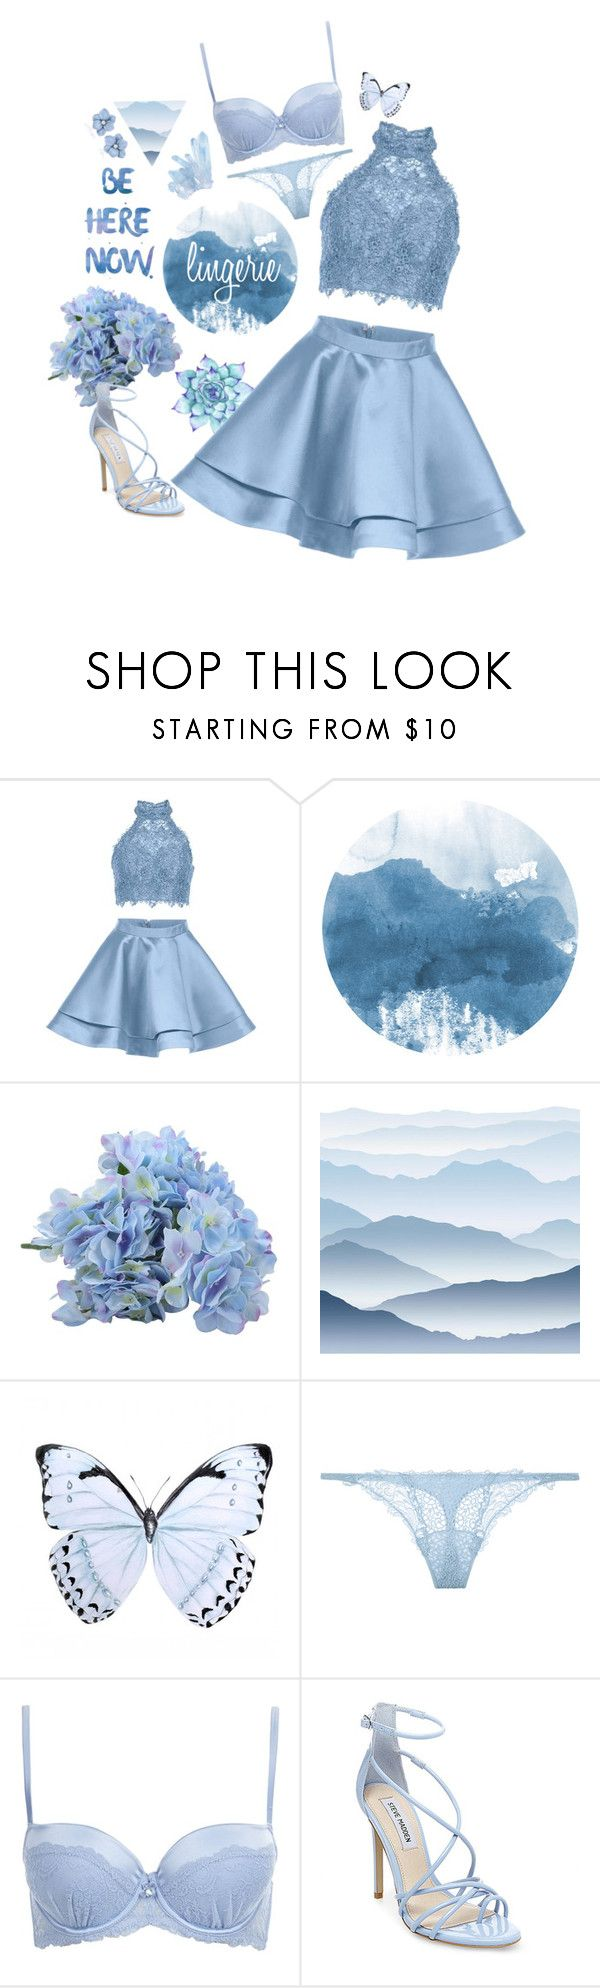 """Baby blues"" by elizabeth-giess ❤ liked on Polyvore featuring Alyce Paris, York Wallcoverings, La Perla and Steve Madden"